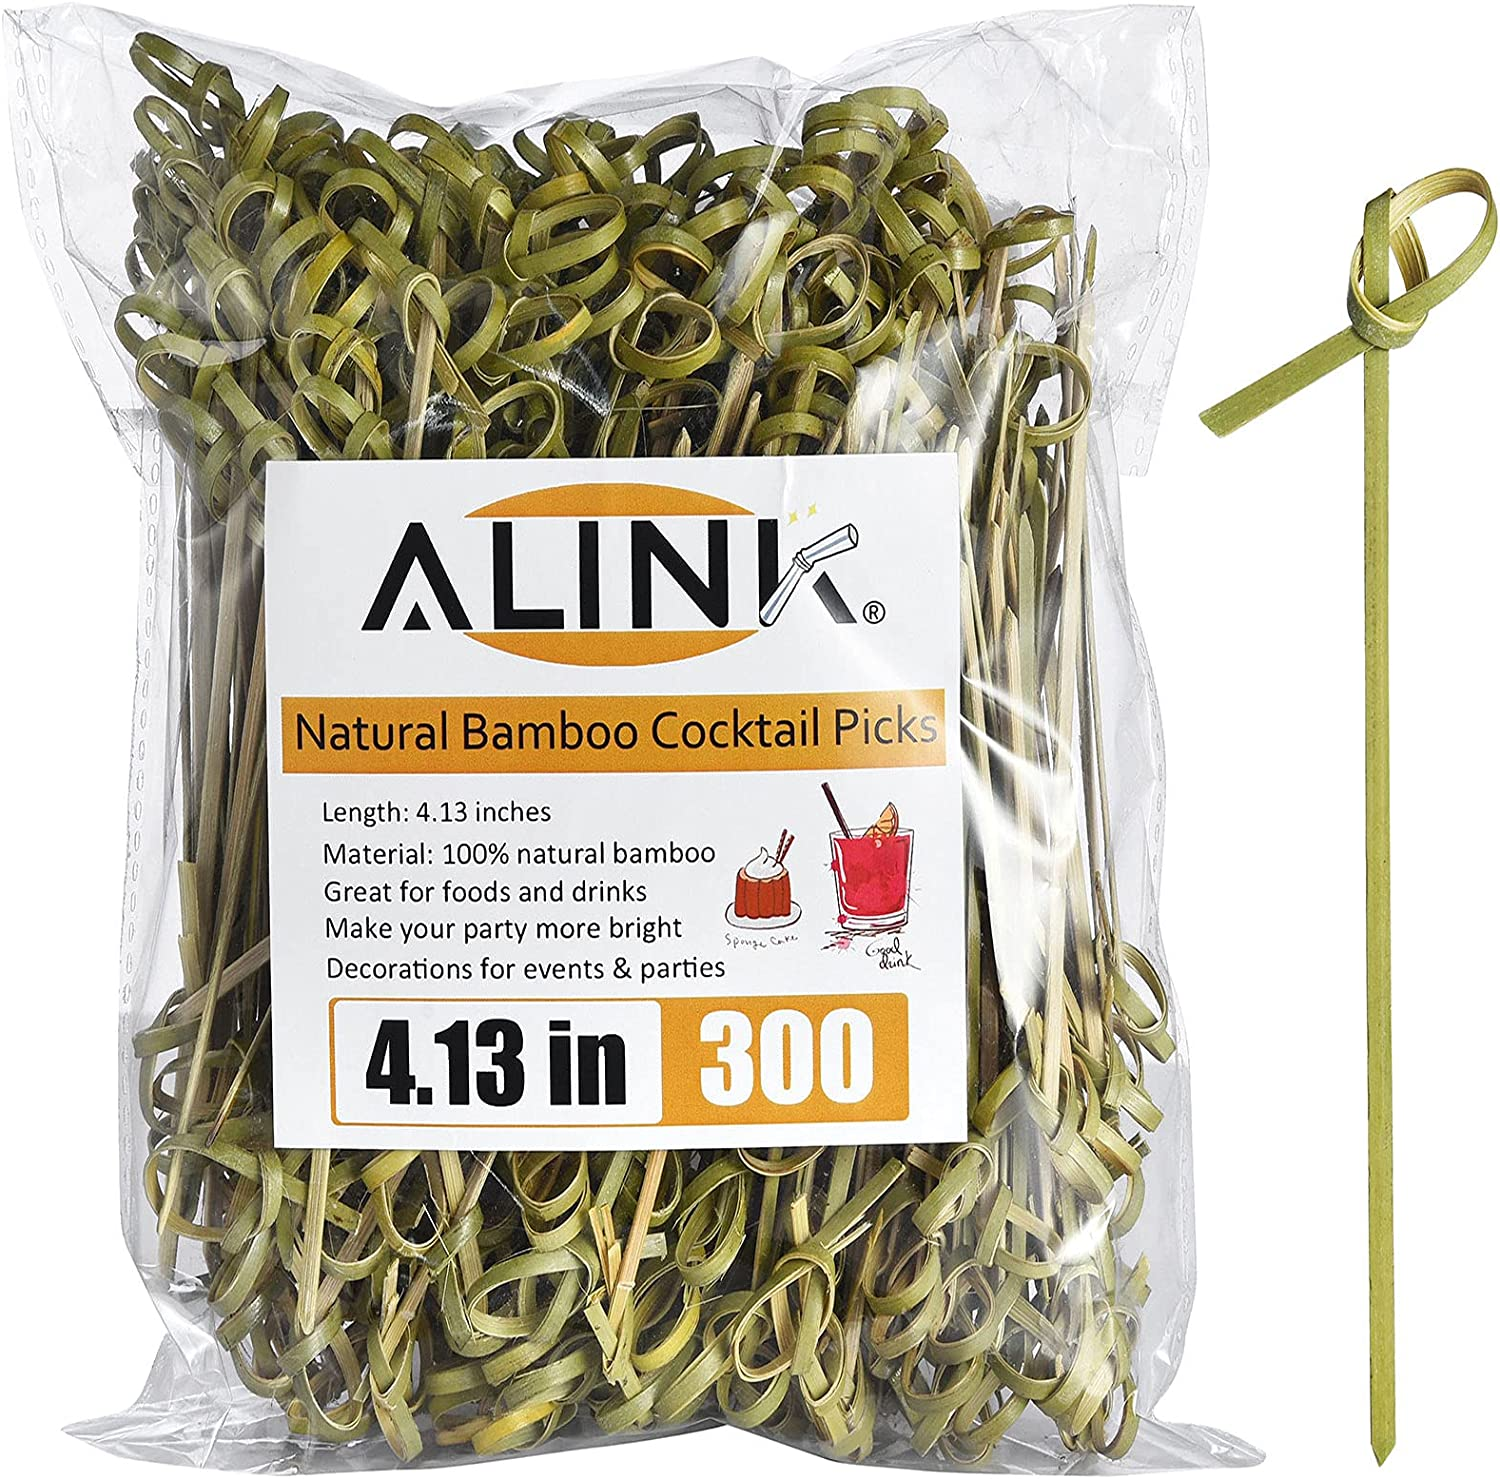 ALINK Bamboo Cocktail Picks, 300 Counts 4.1 inch Fruit Toothpick Skewers for Party Food Drinks Appetizer